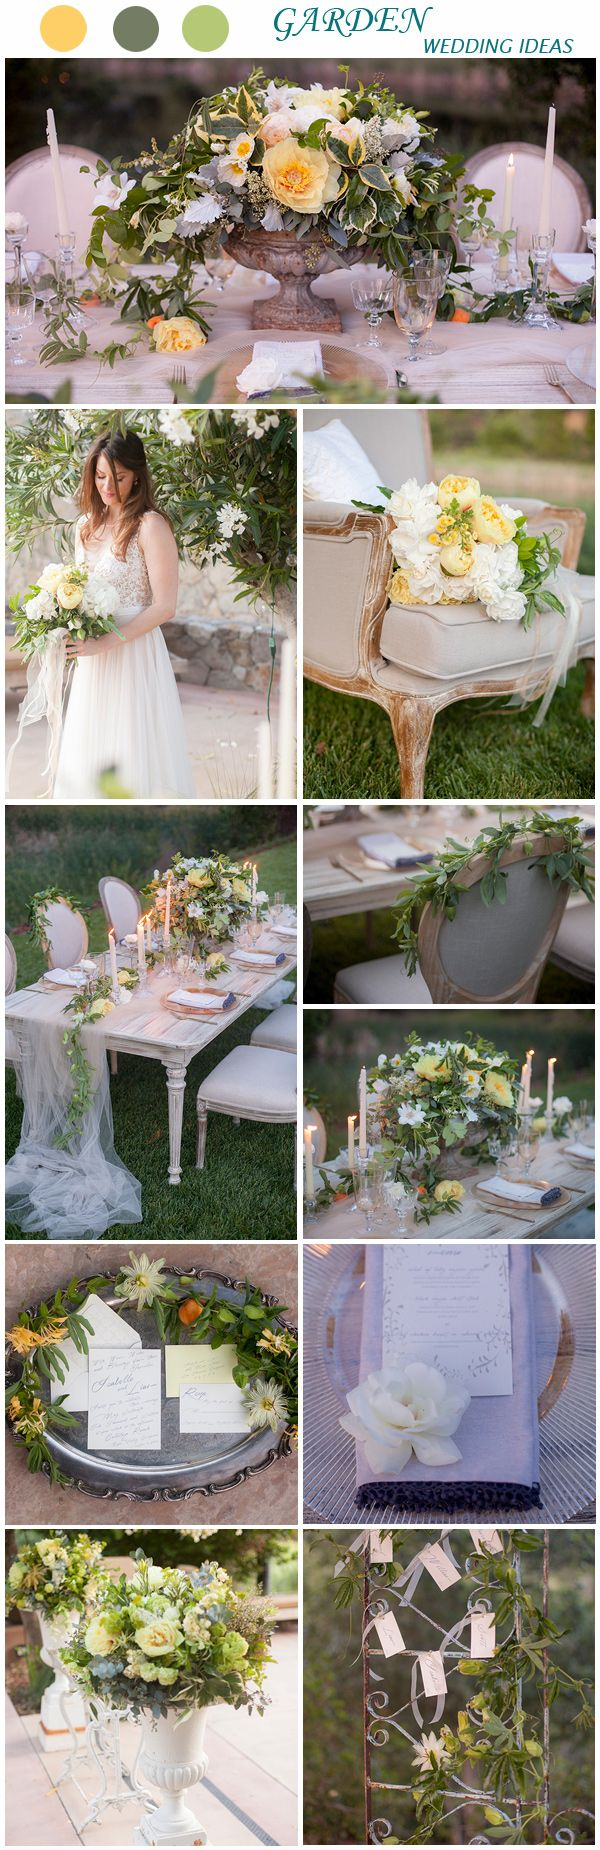 Wedding decorations venue october 2018  best Wed images on Pinterest  Wedding ideas Mariage and Wedding